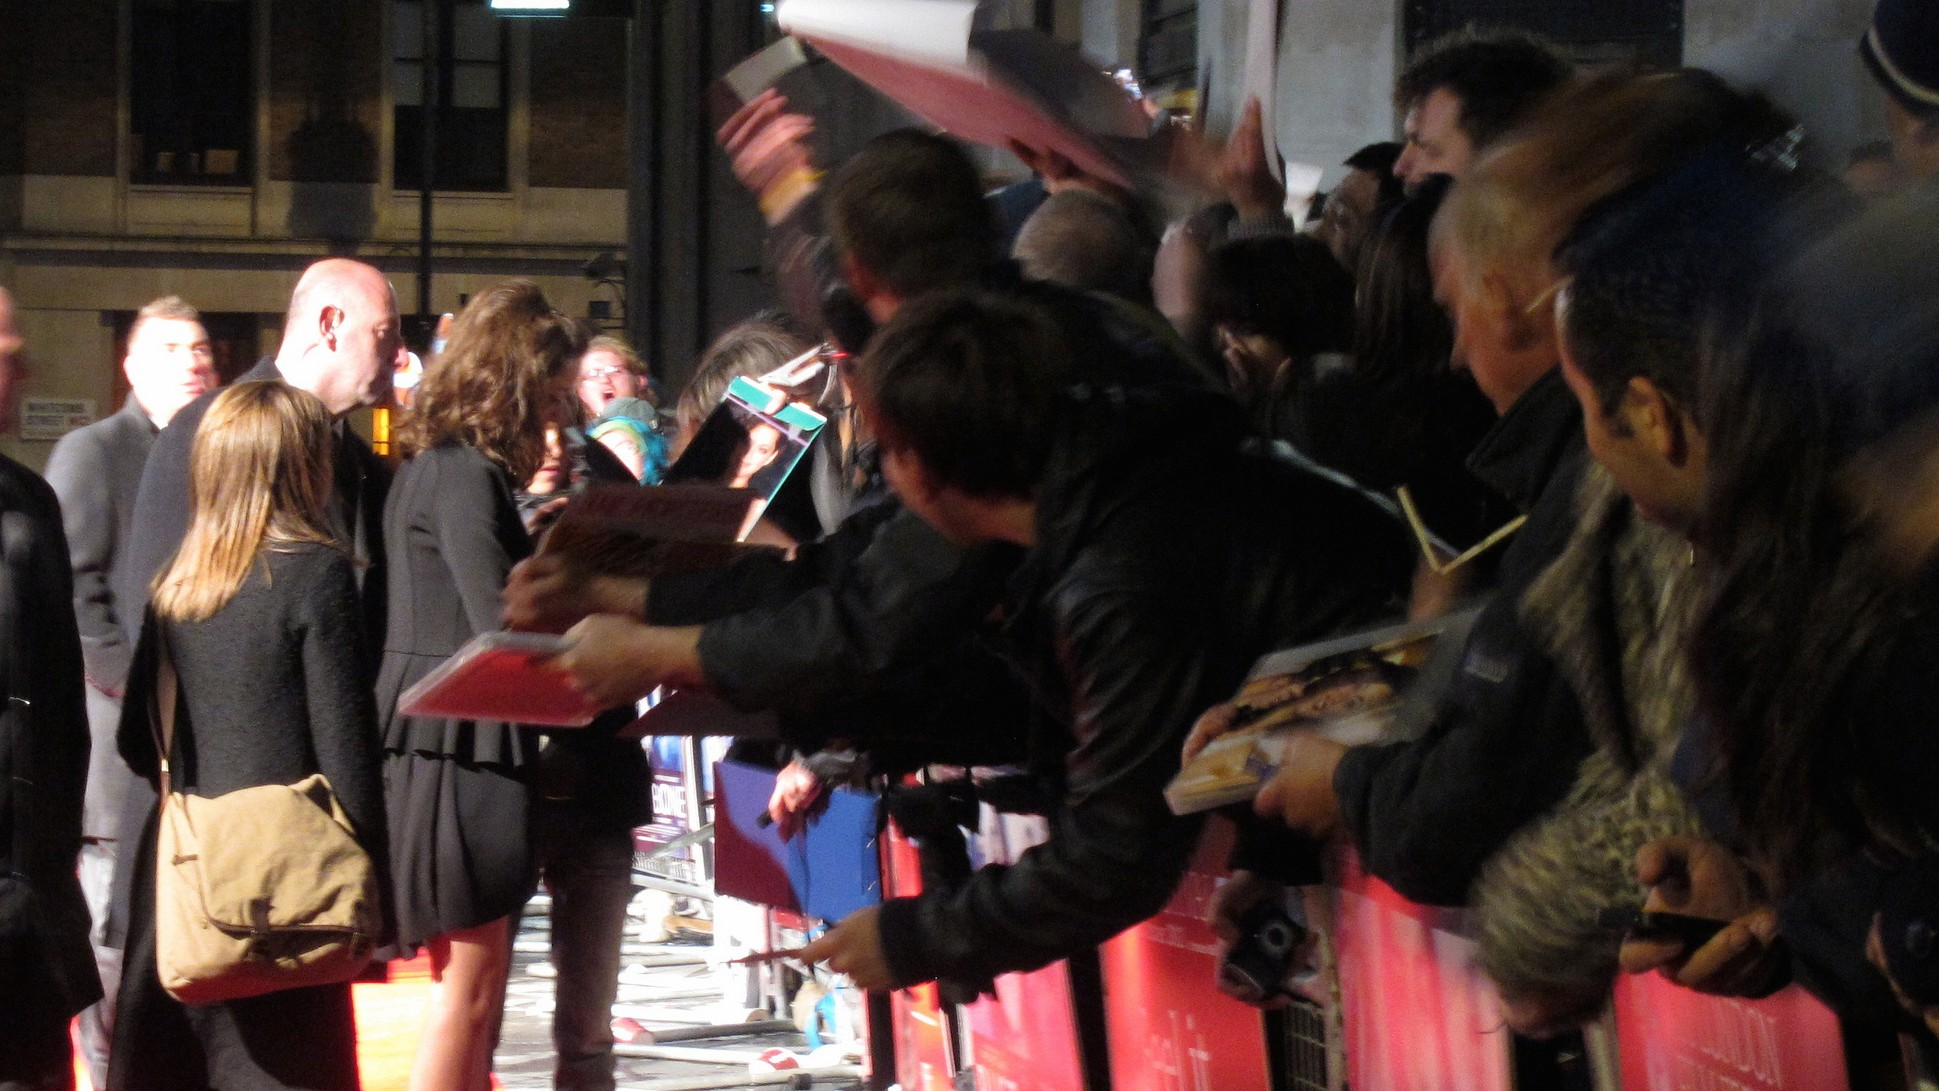 The Spammers Who Chase After Autographs